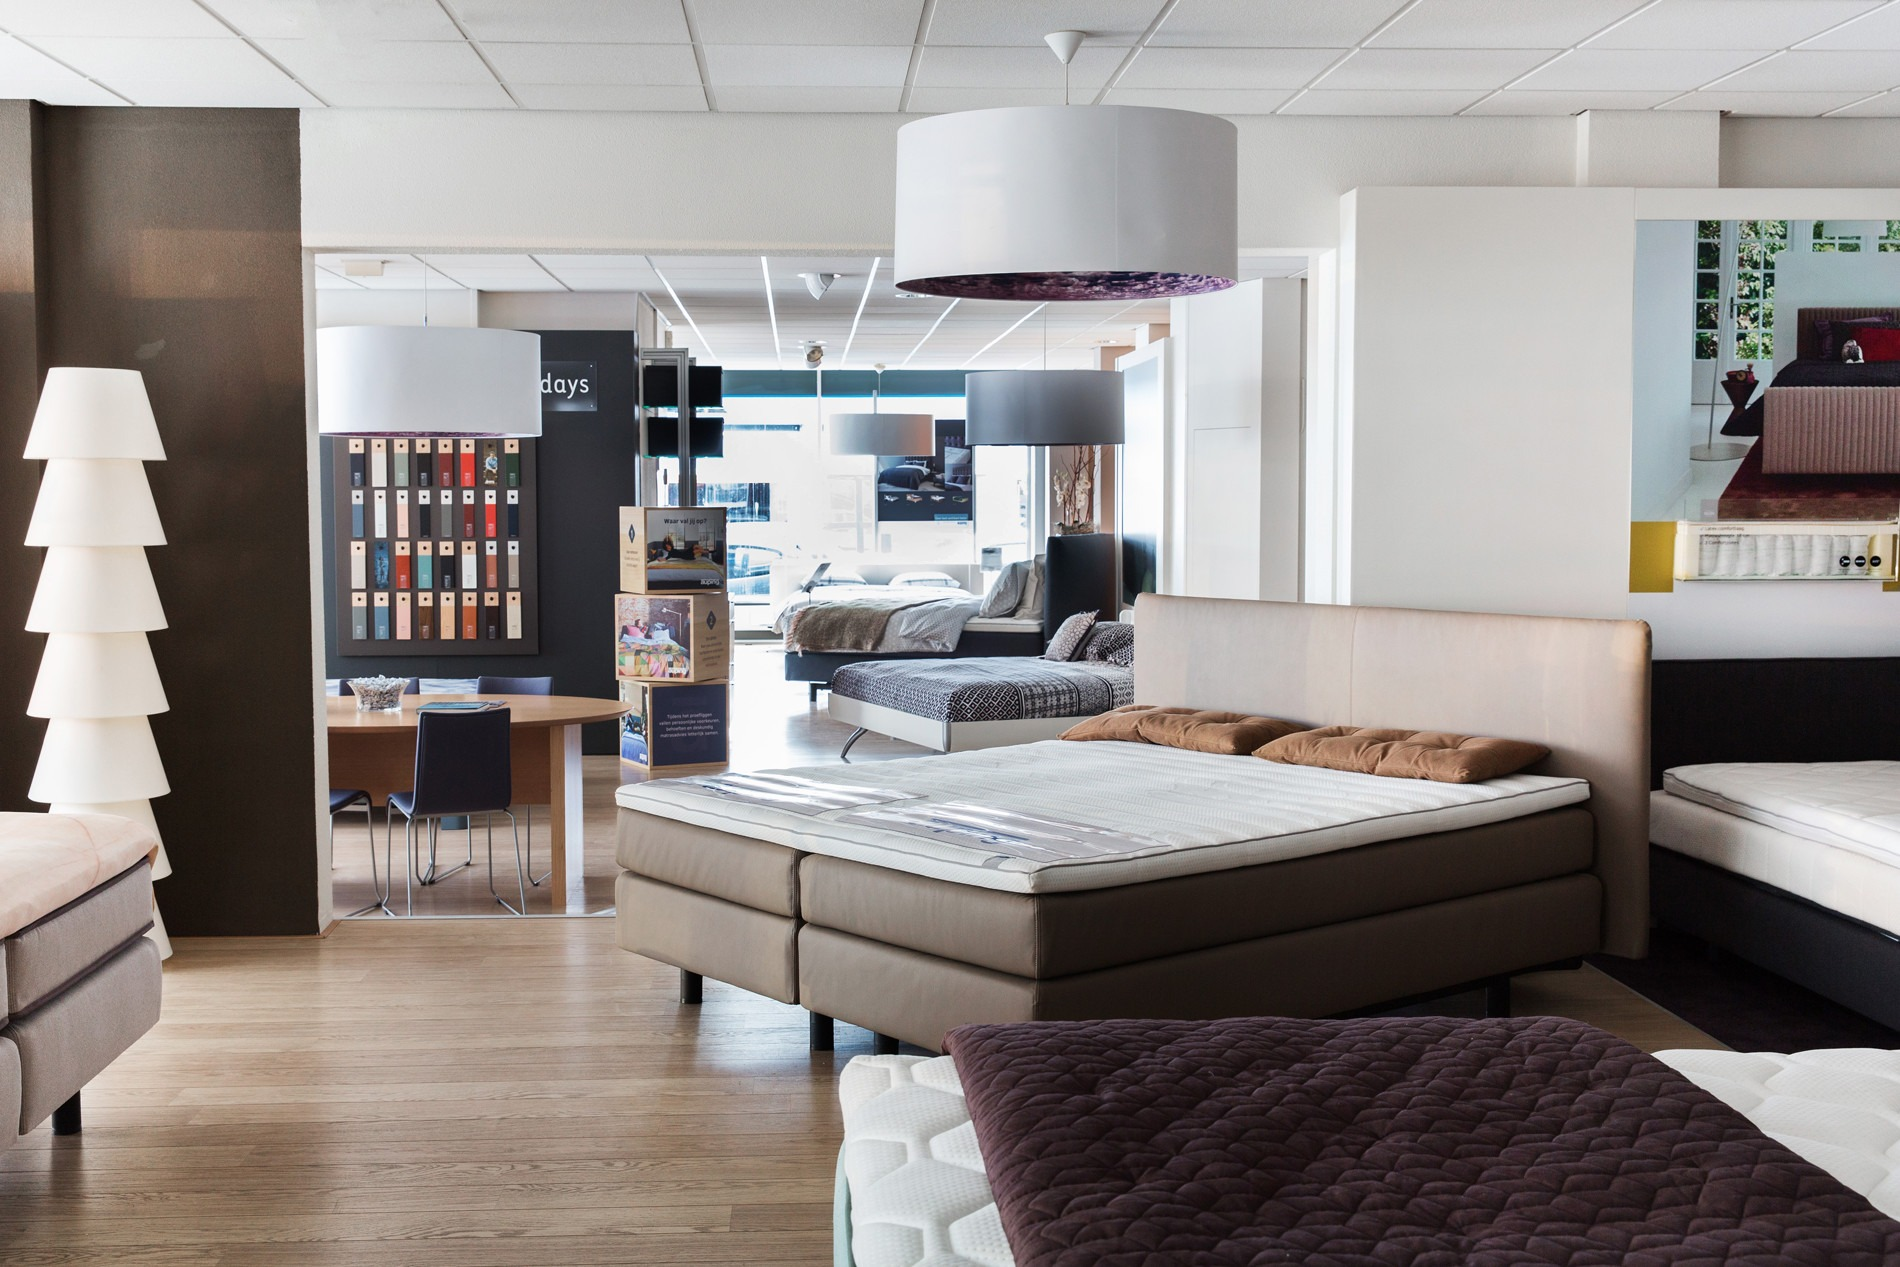 Bedden outlet rotterdam good bedden outlet rotterdam with for Goedkope kamers rotterdam